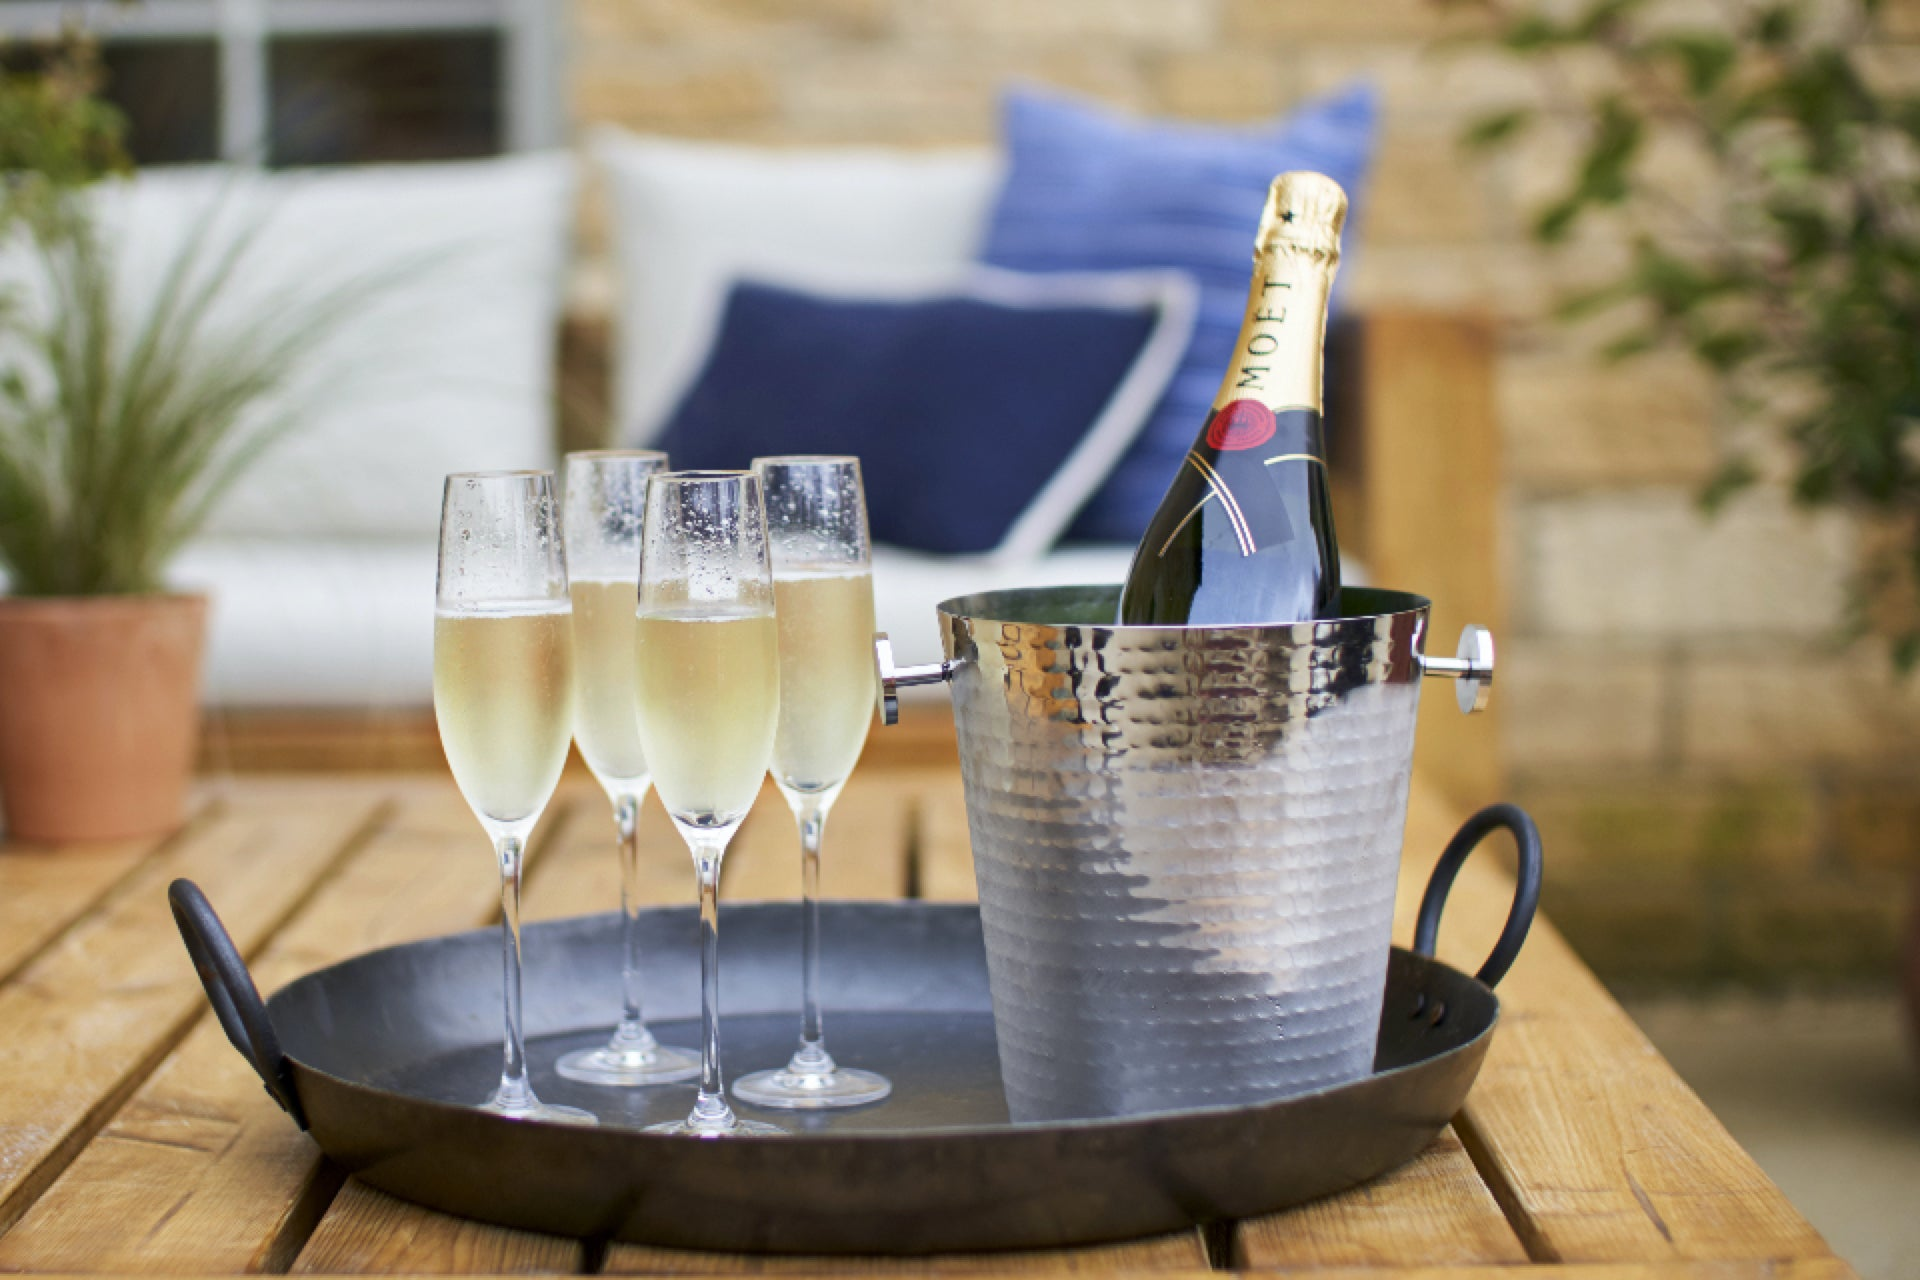 Moet champagne in competition to win a house